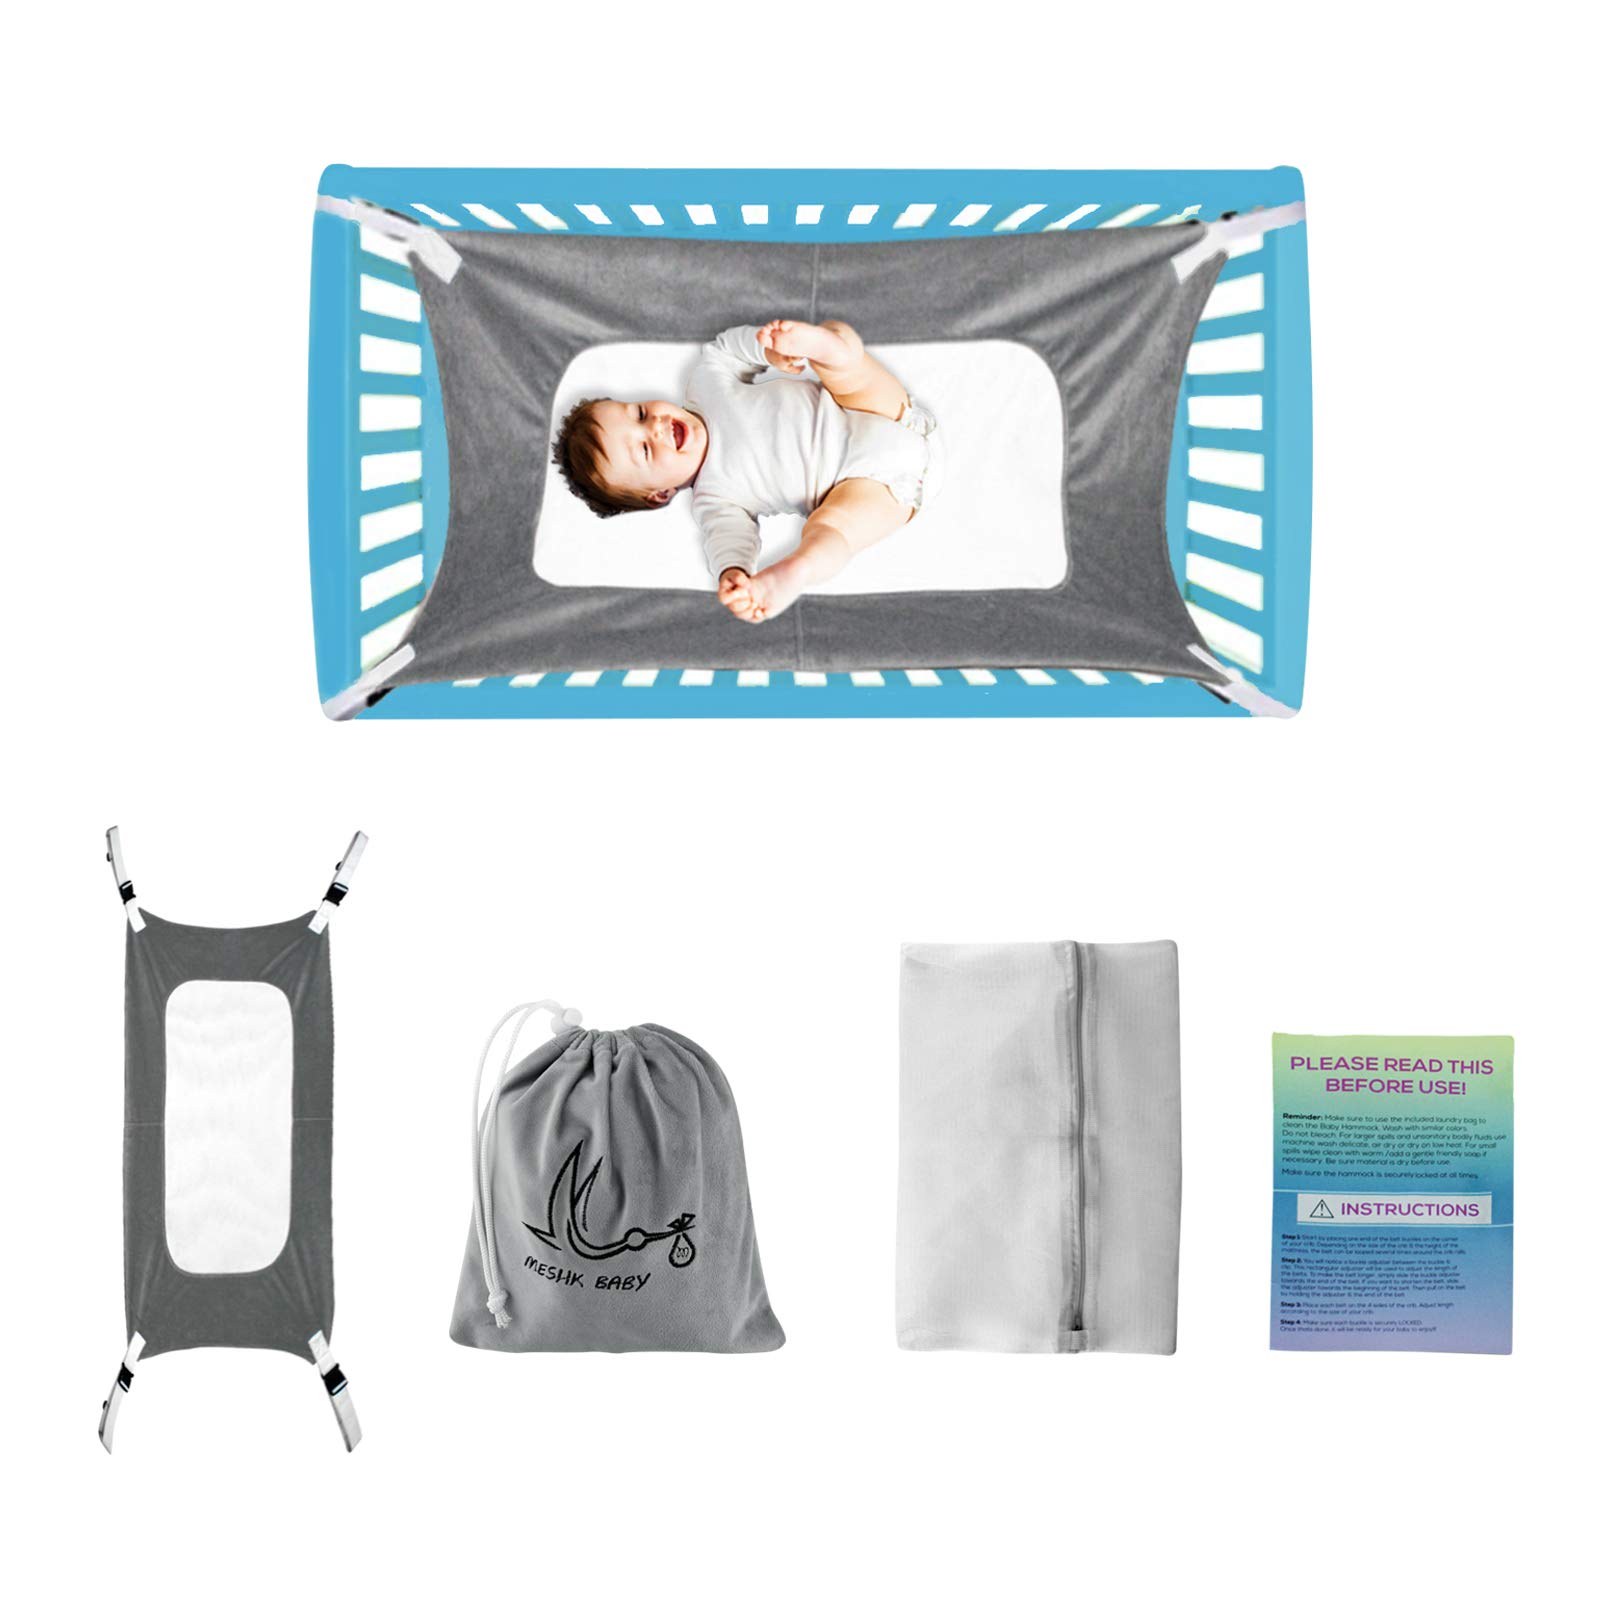 Baby Hammock for Crib,Newborn Bassinet,Mimics Womb,Enhanced Material,Infant Travel Bed, Crescent Womb Infant Safety Bed, Baby Shower Gift, (Bonus Gift&Washing Bag)